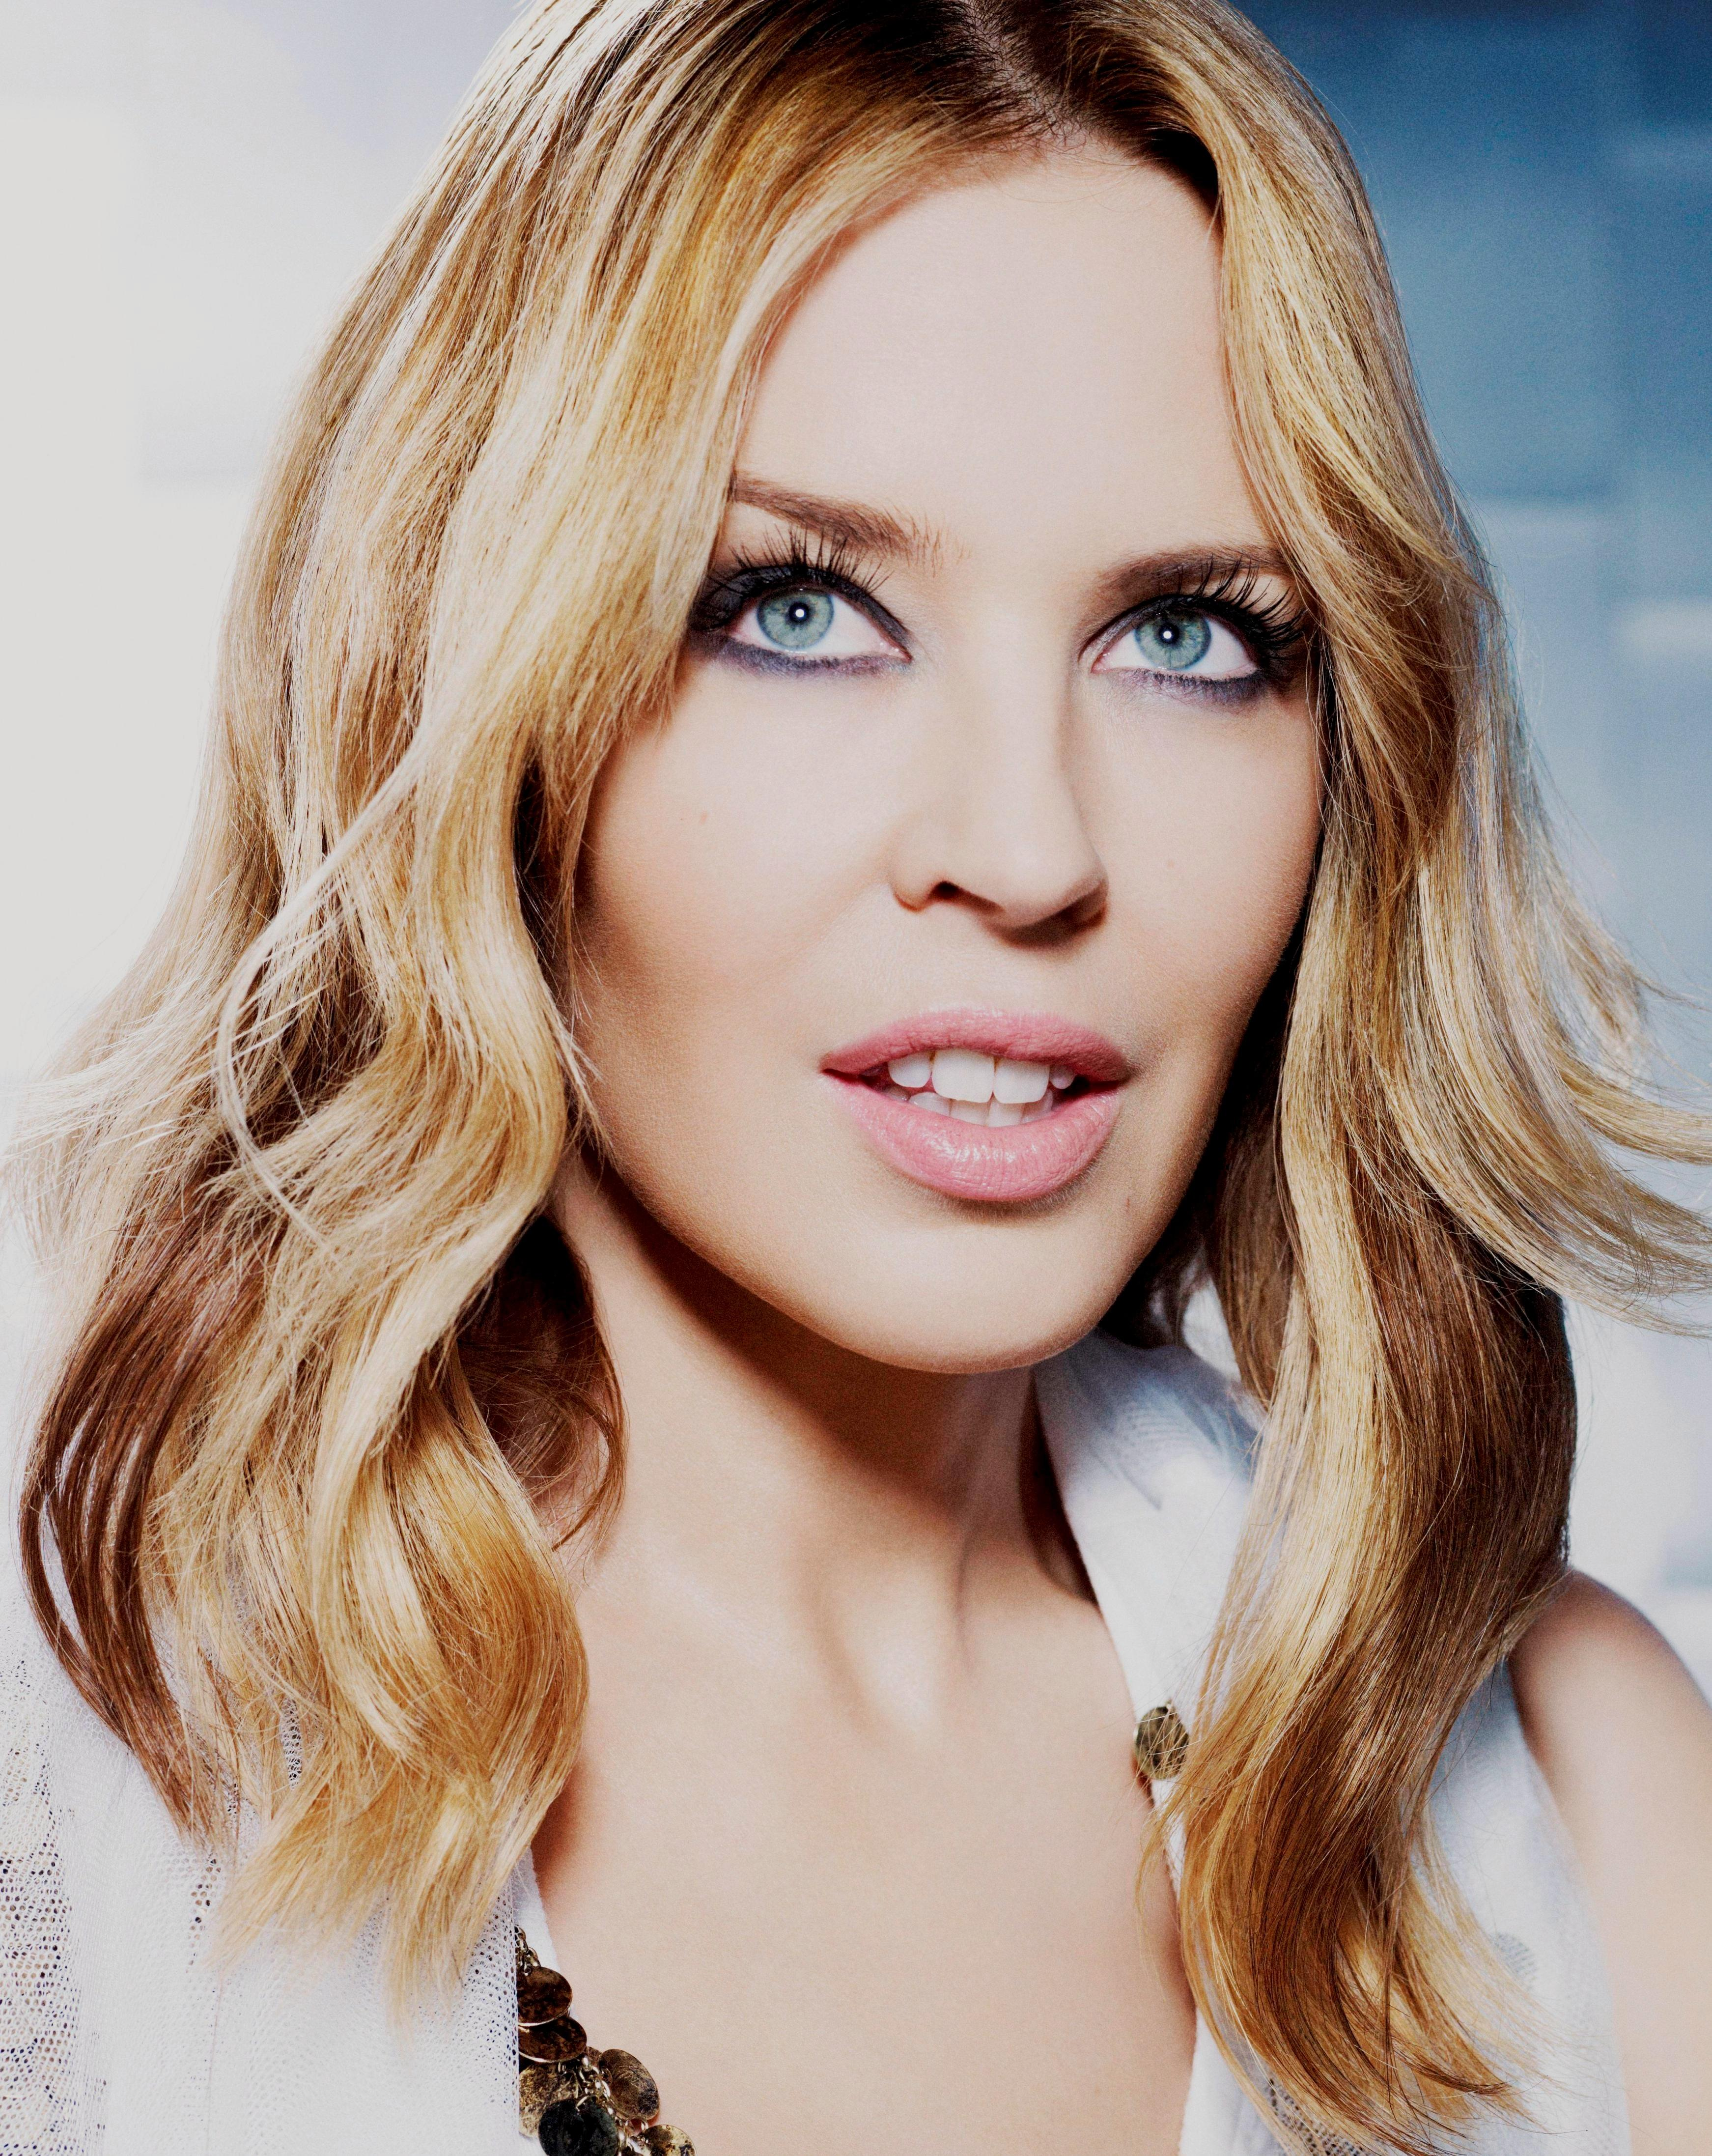 Quotes Wallpaper Hd For Android Kylie Minogue Wallpaper Hd Download